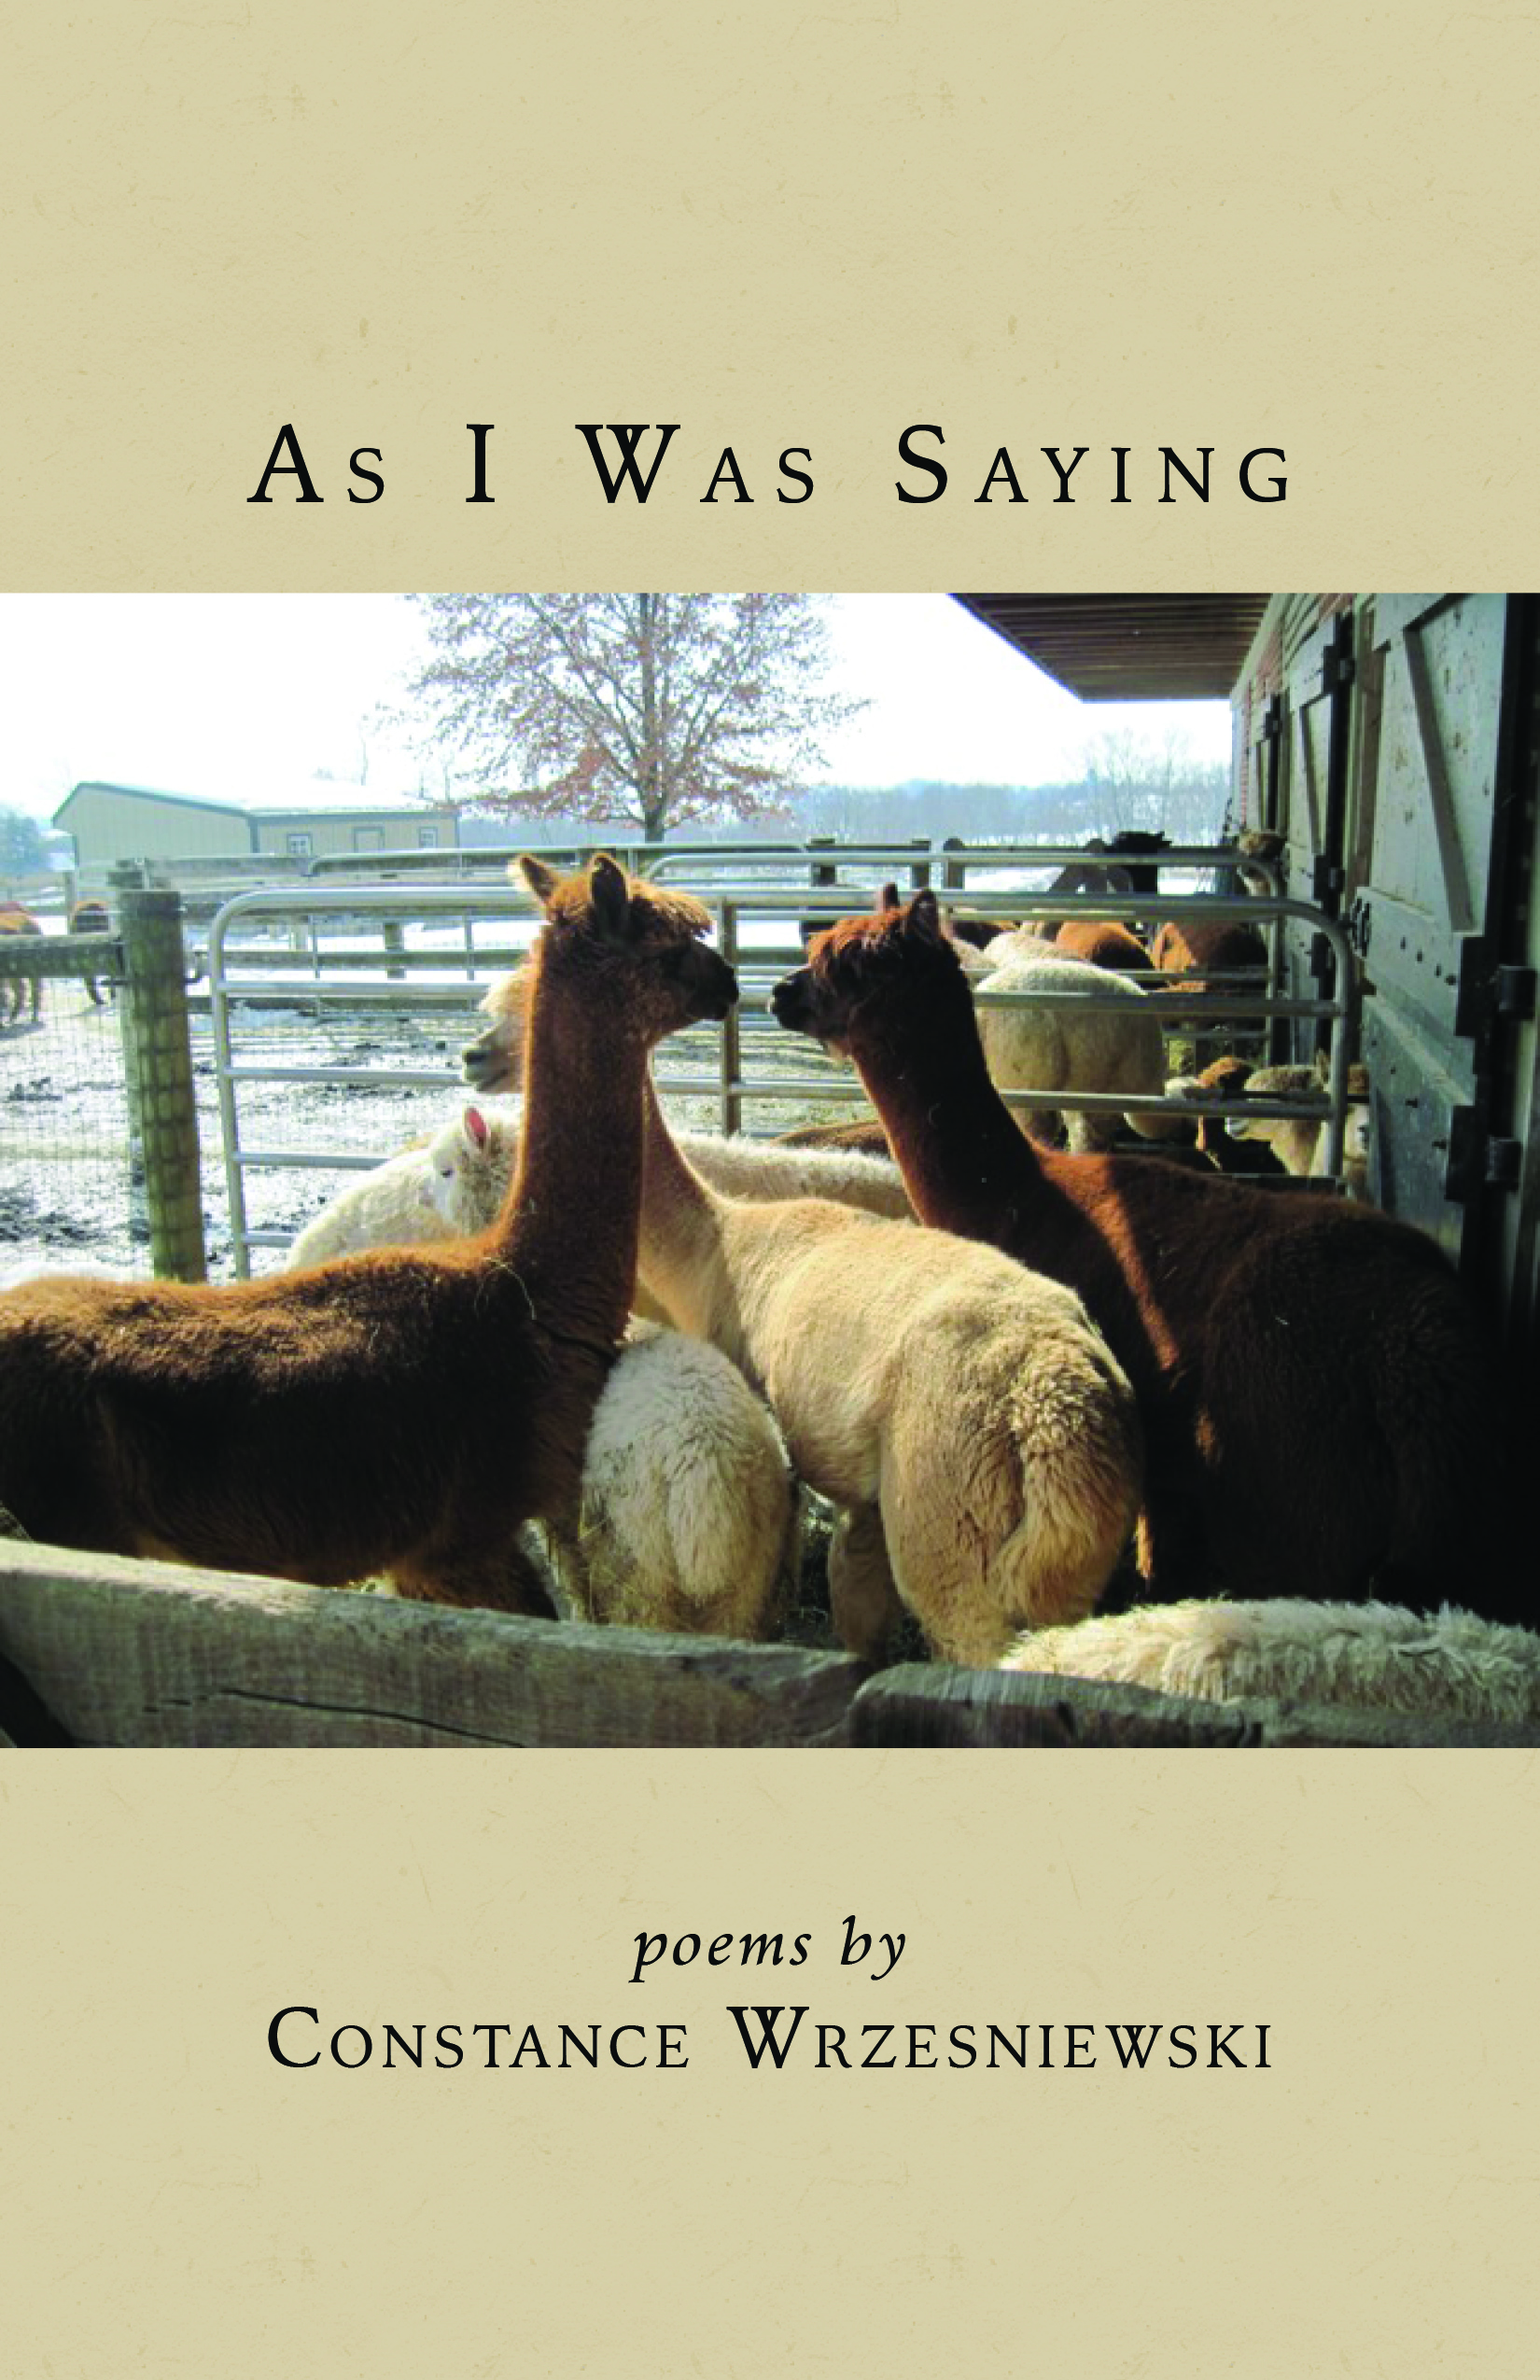 Featured... - As I Was Saying, $14.99 Finishing Line PressAs I Was Saying is an enchanting collection of verse, a joy to read. Progressing in time, it captures people, places, sounds, and sights of her growing up in Philadelphia, an atmosphere familiar to city dwellers of her generation. It is alive with voices of children, street vendors, and delivery men, recalling the rhythms of a gentler age. - Carol Breslin, Ph.D.